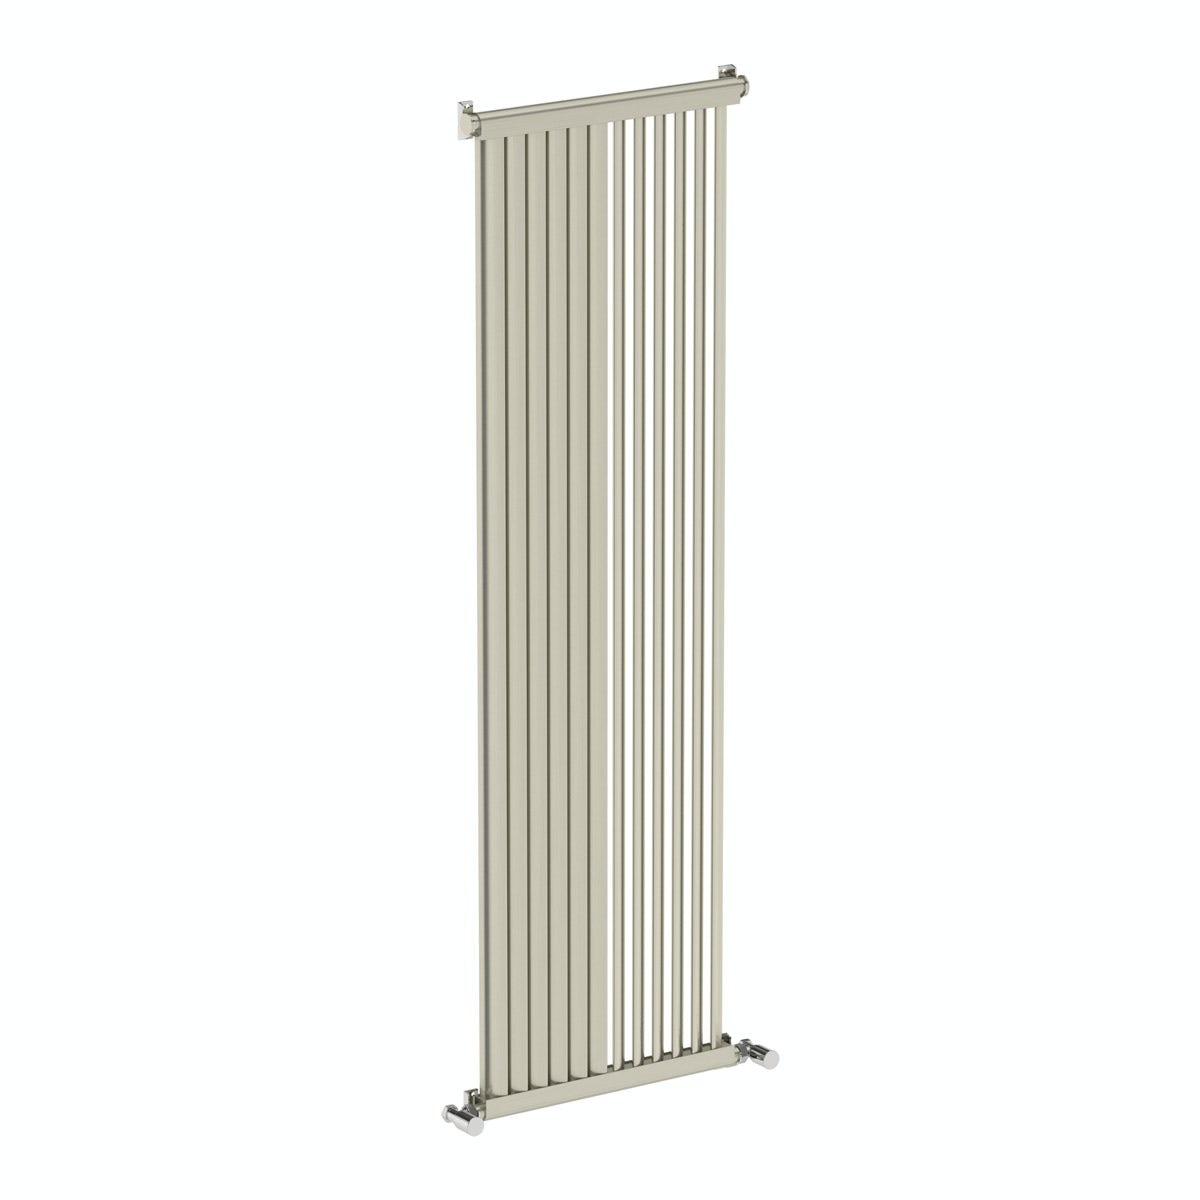 Mode Zephyra vertical radiator 1500 x 468